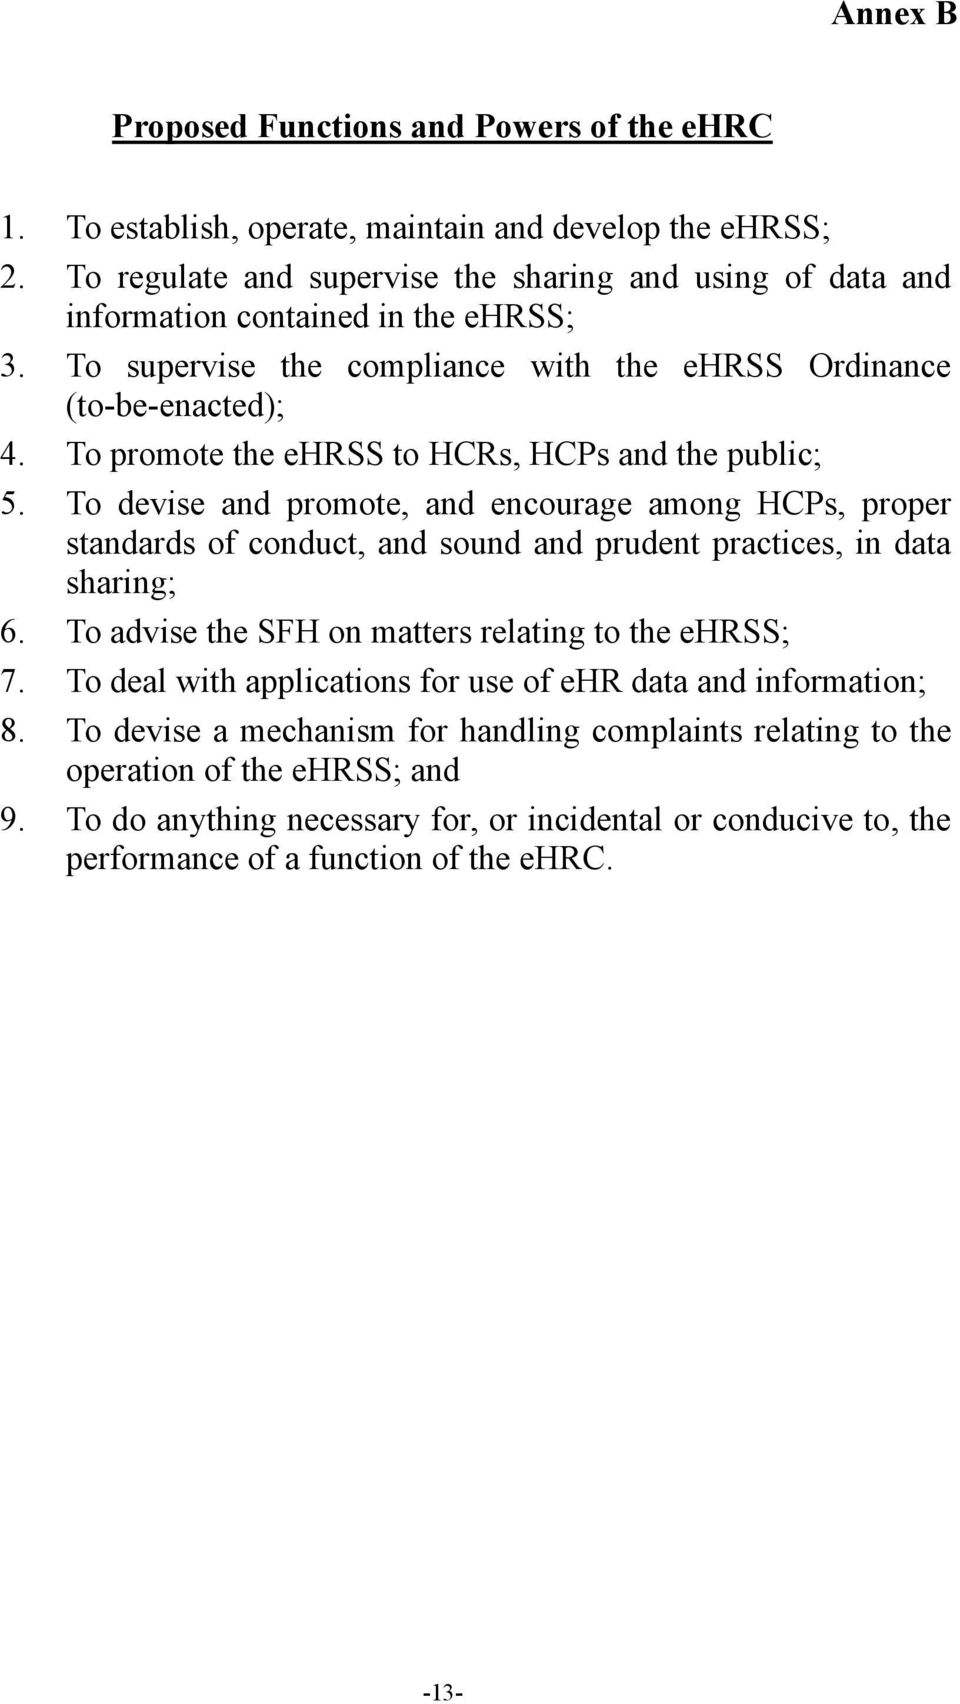 To promote the ehrss to HCRs, HCPs and the public; 5. To devise and promote, and encourage among HCPs, proper standards of conduct, and sound and prudent practices, in data sharing; 6.